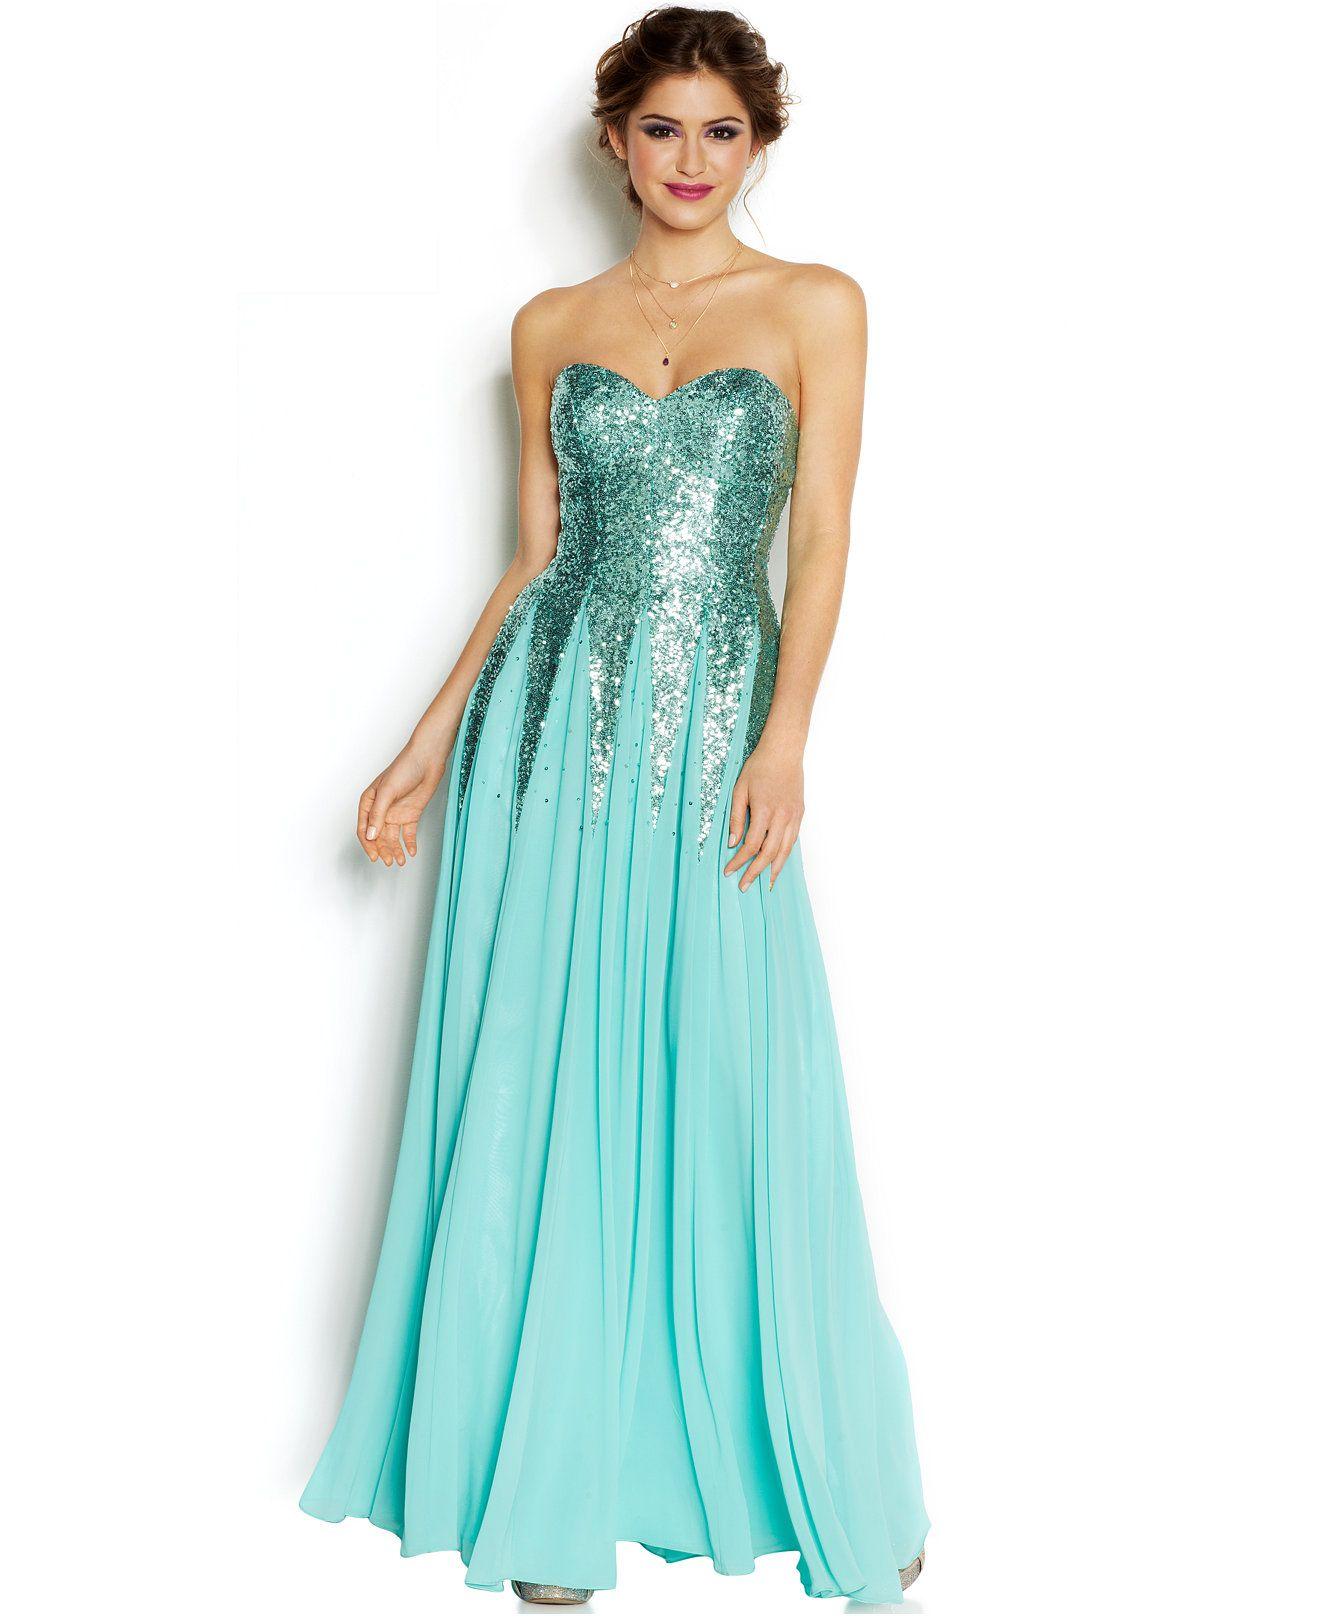 B Darlin Juniors\' Sequin Strapless Gown - Juniors Shop All Prom ...